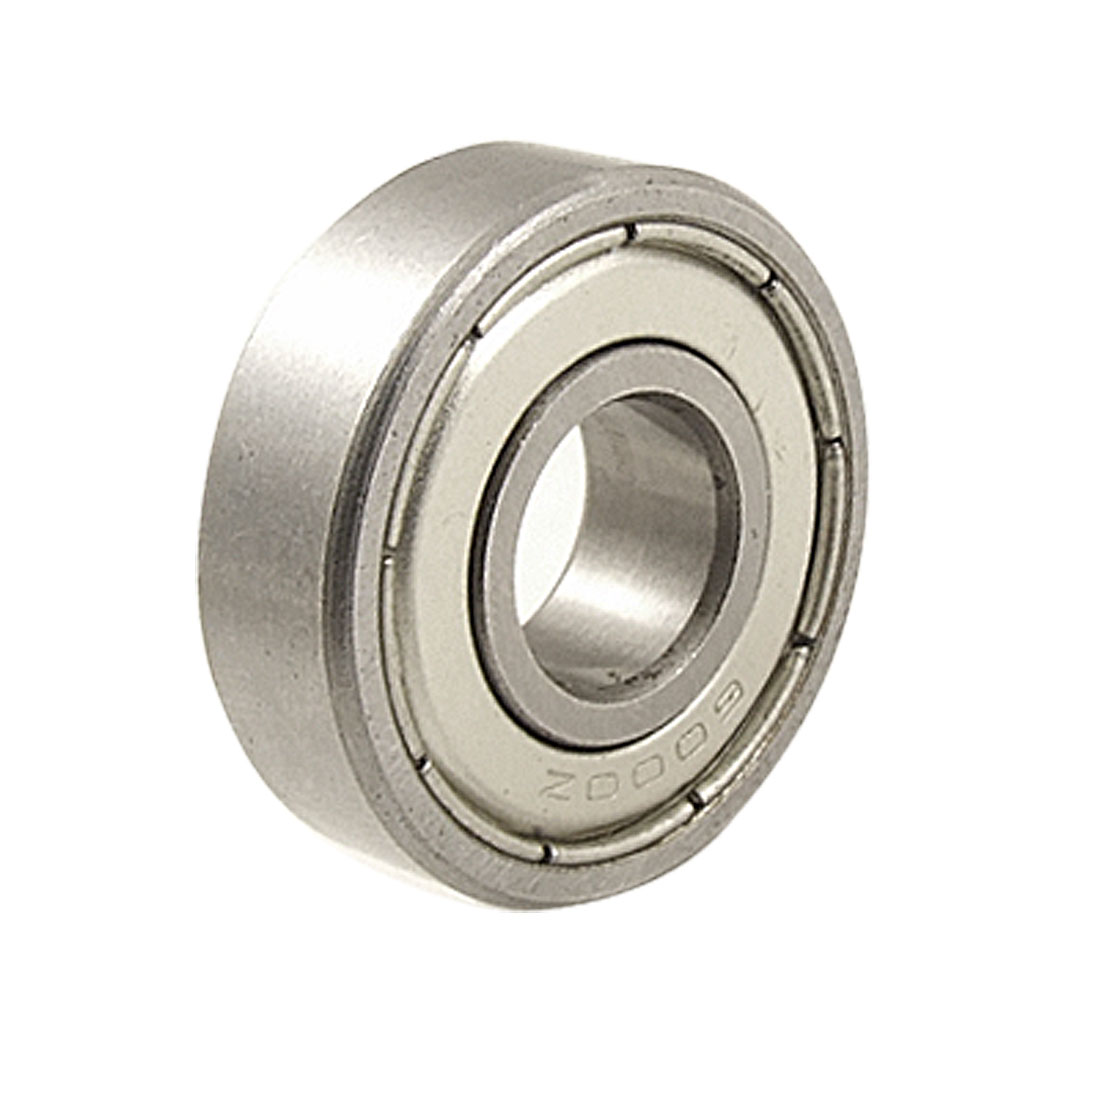 10 x 26 x 8mm 6000Z Silver Tone Shield Premium Ball Bearing